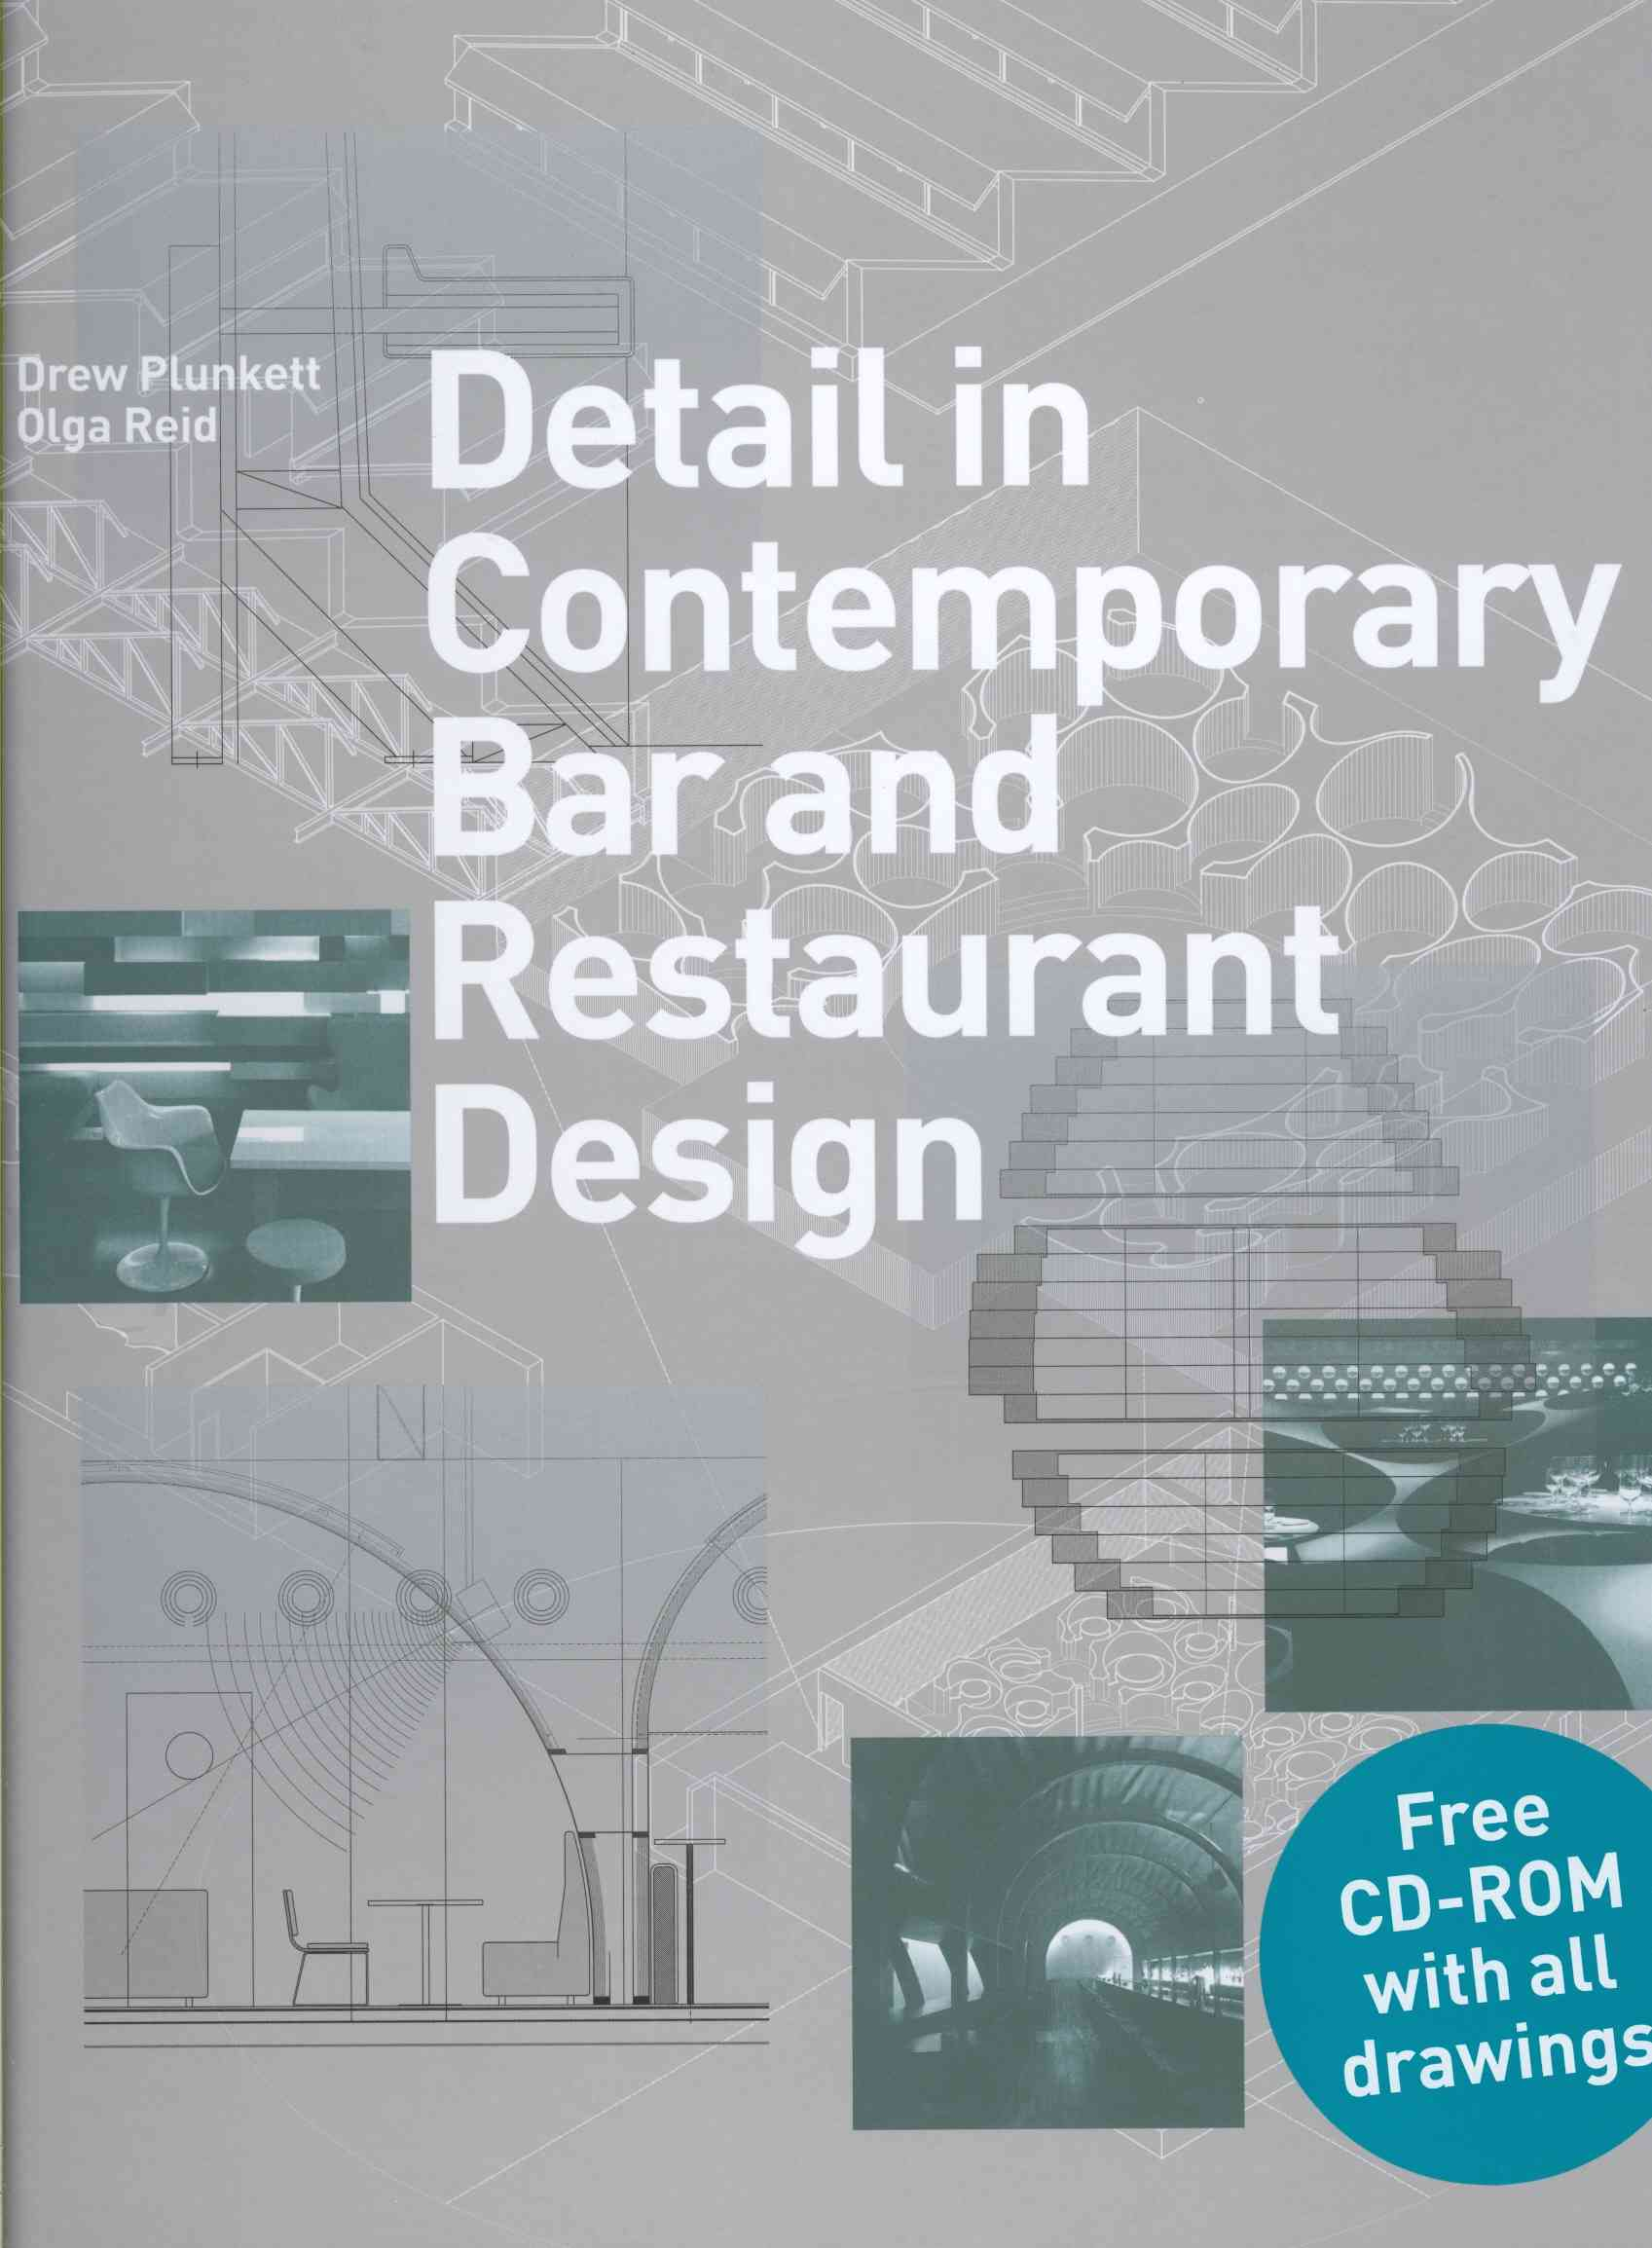 Detail in Contemporary Bar and Restaurant Design By Plunkett, Drew/ Reid, Olga